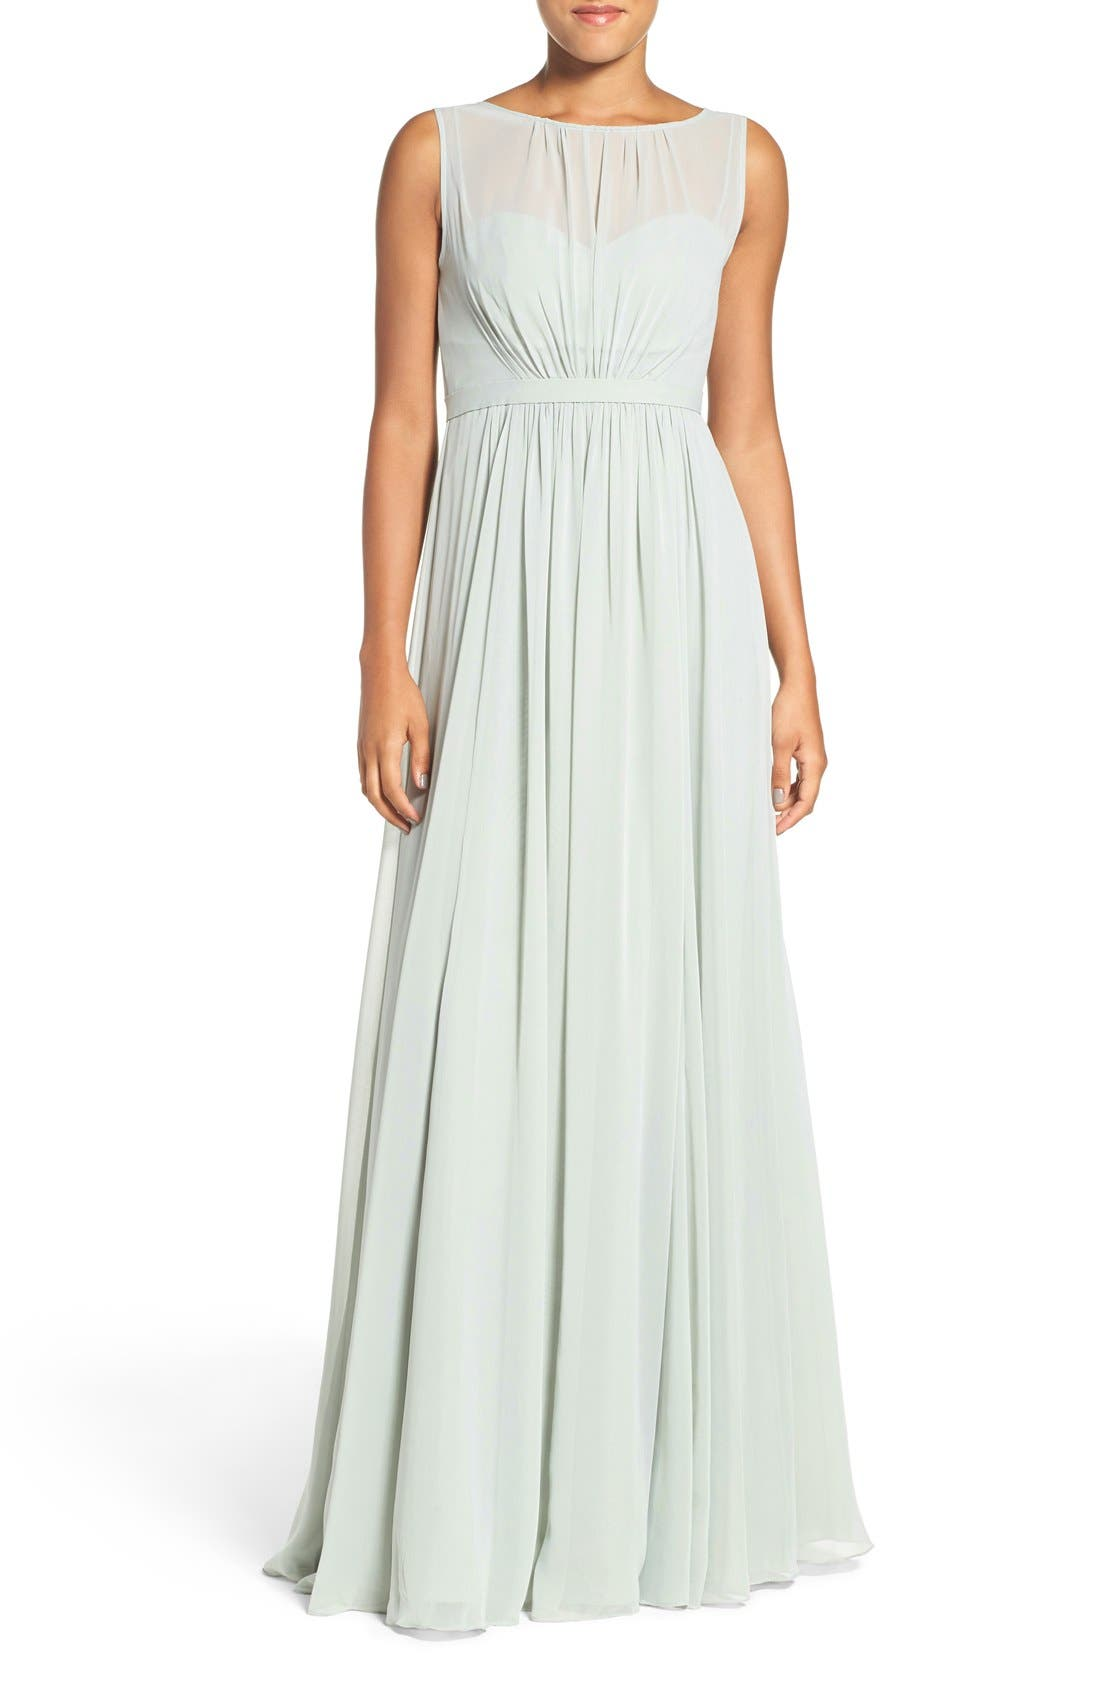 Vivienne Pleated Chiffon Gown,                             Main thumbnail 1, color,                             Morning Mist